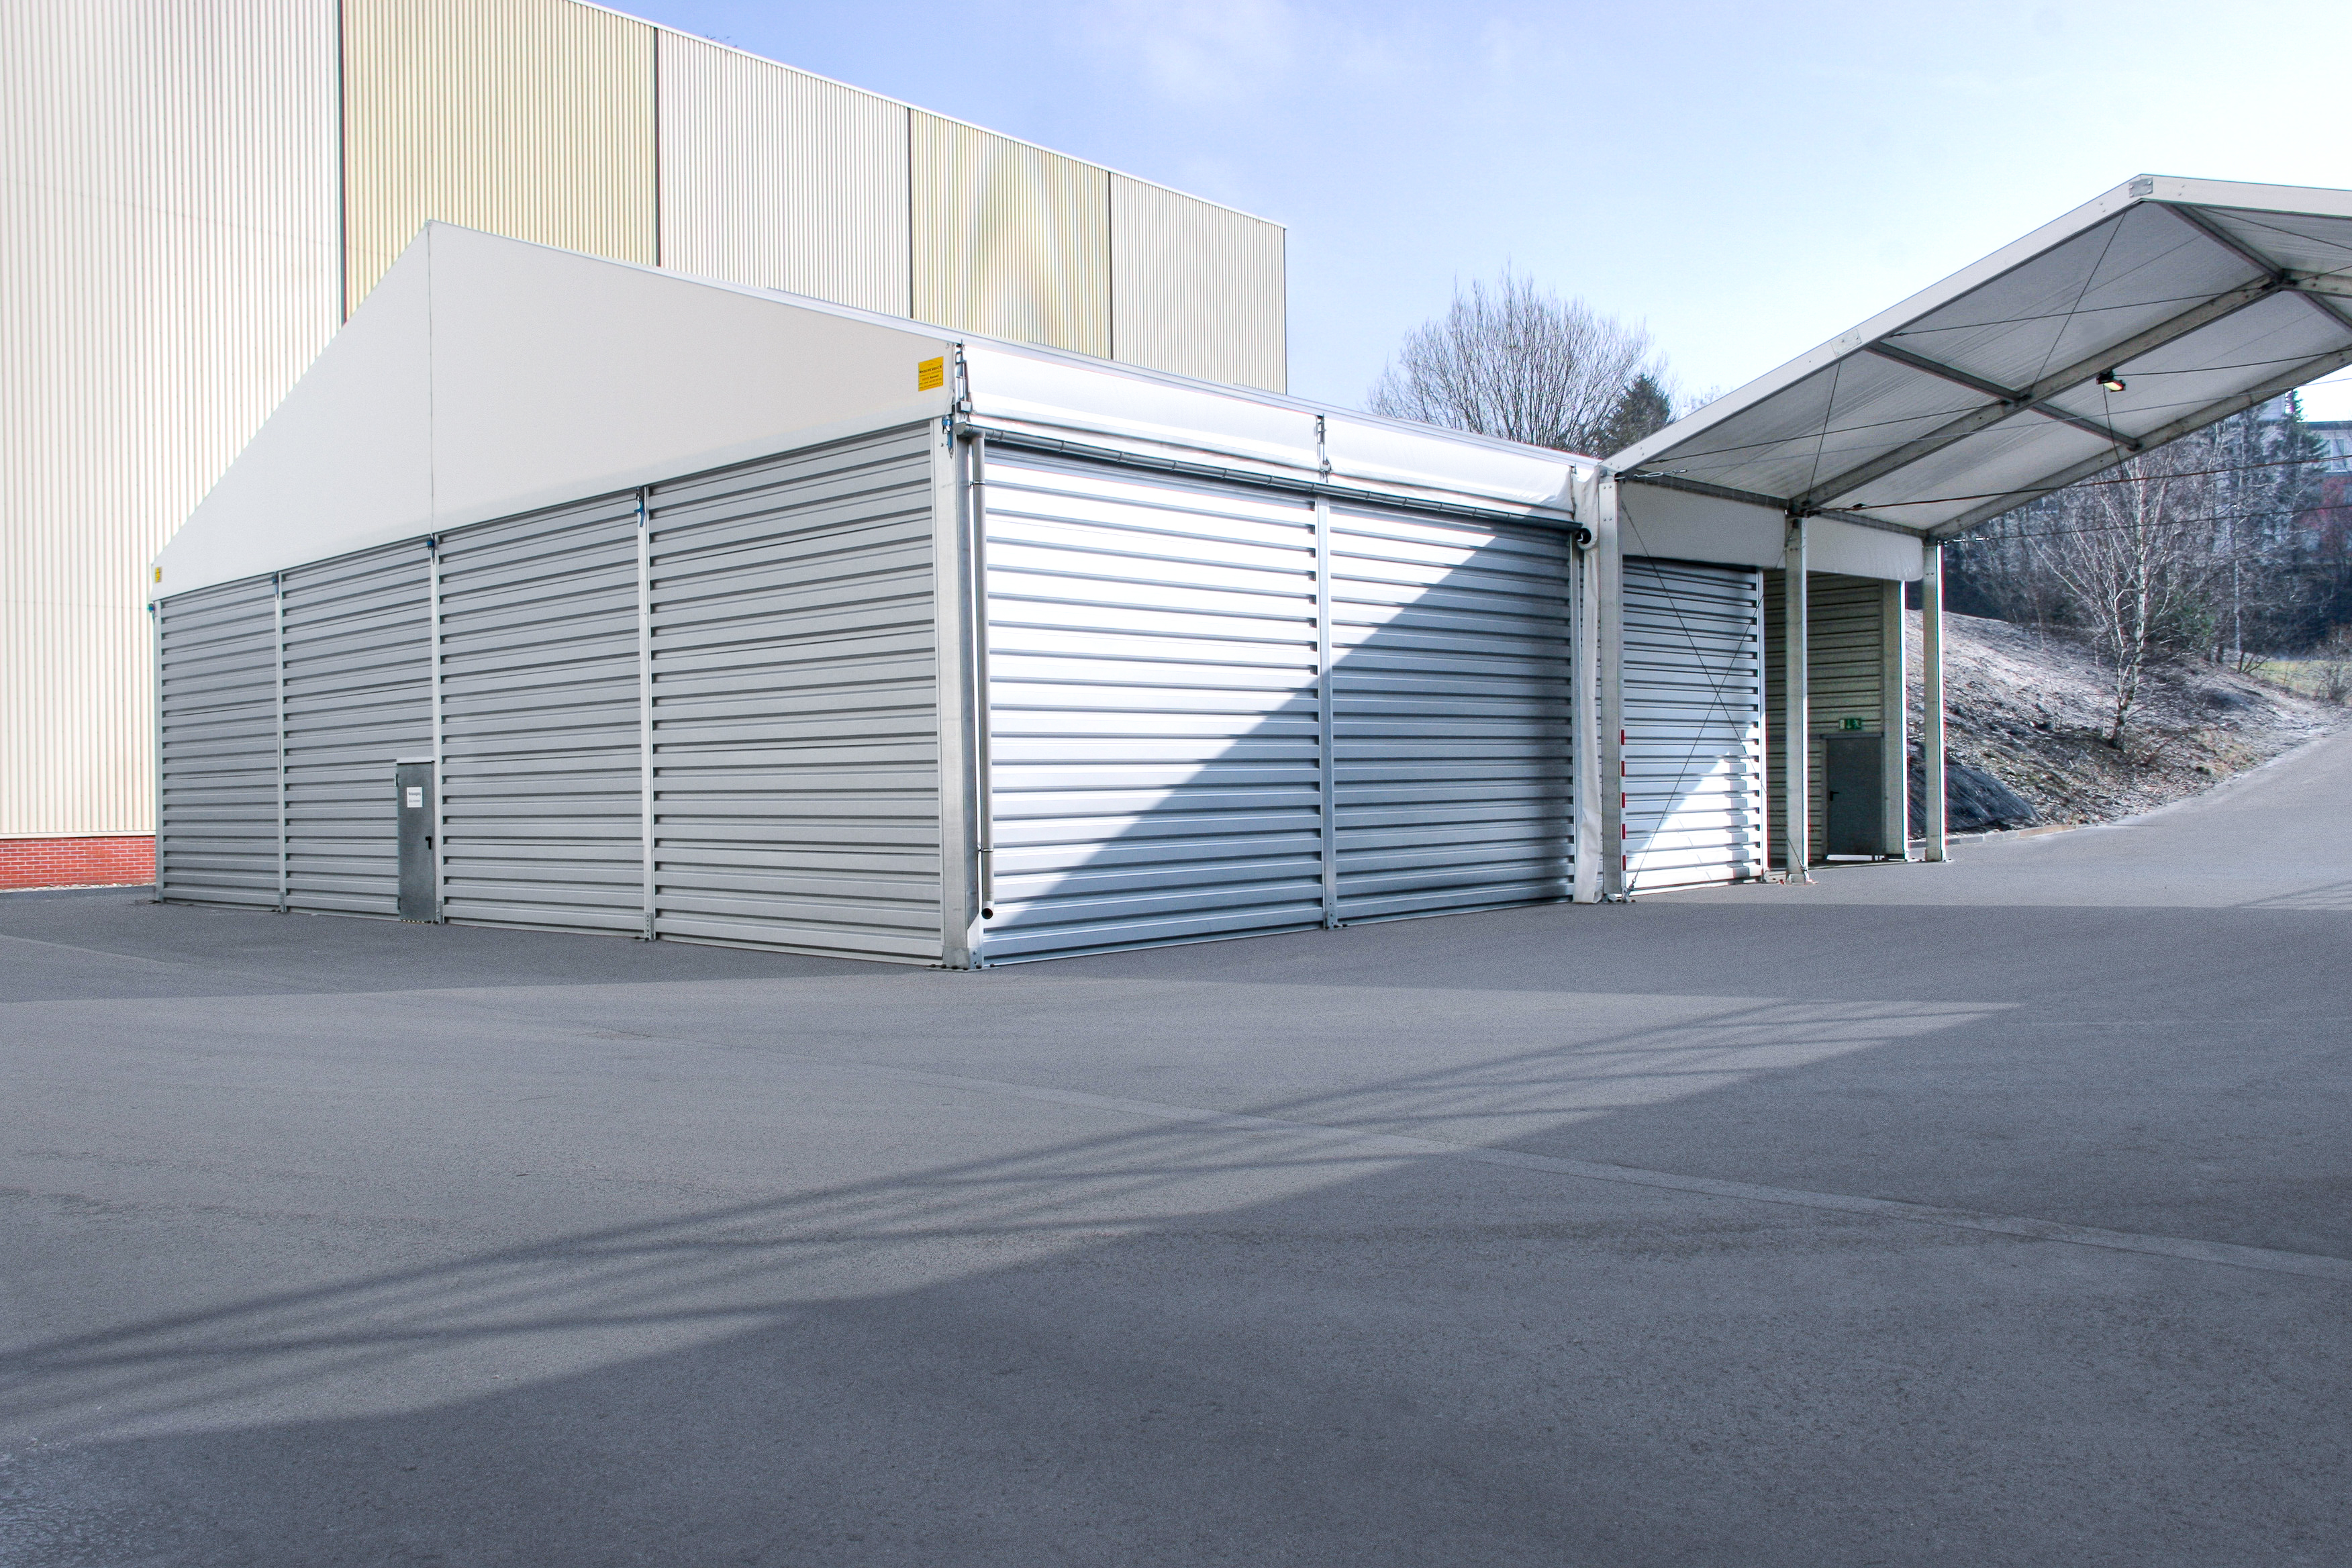 Open side walls as a loading bay canopy